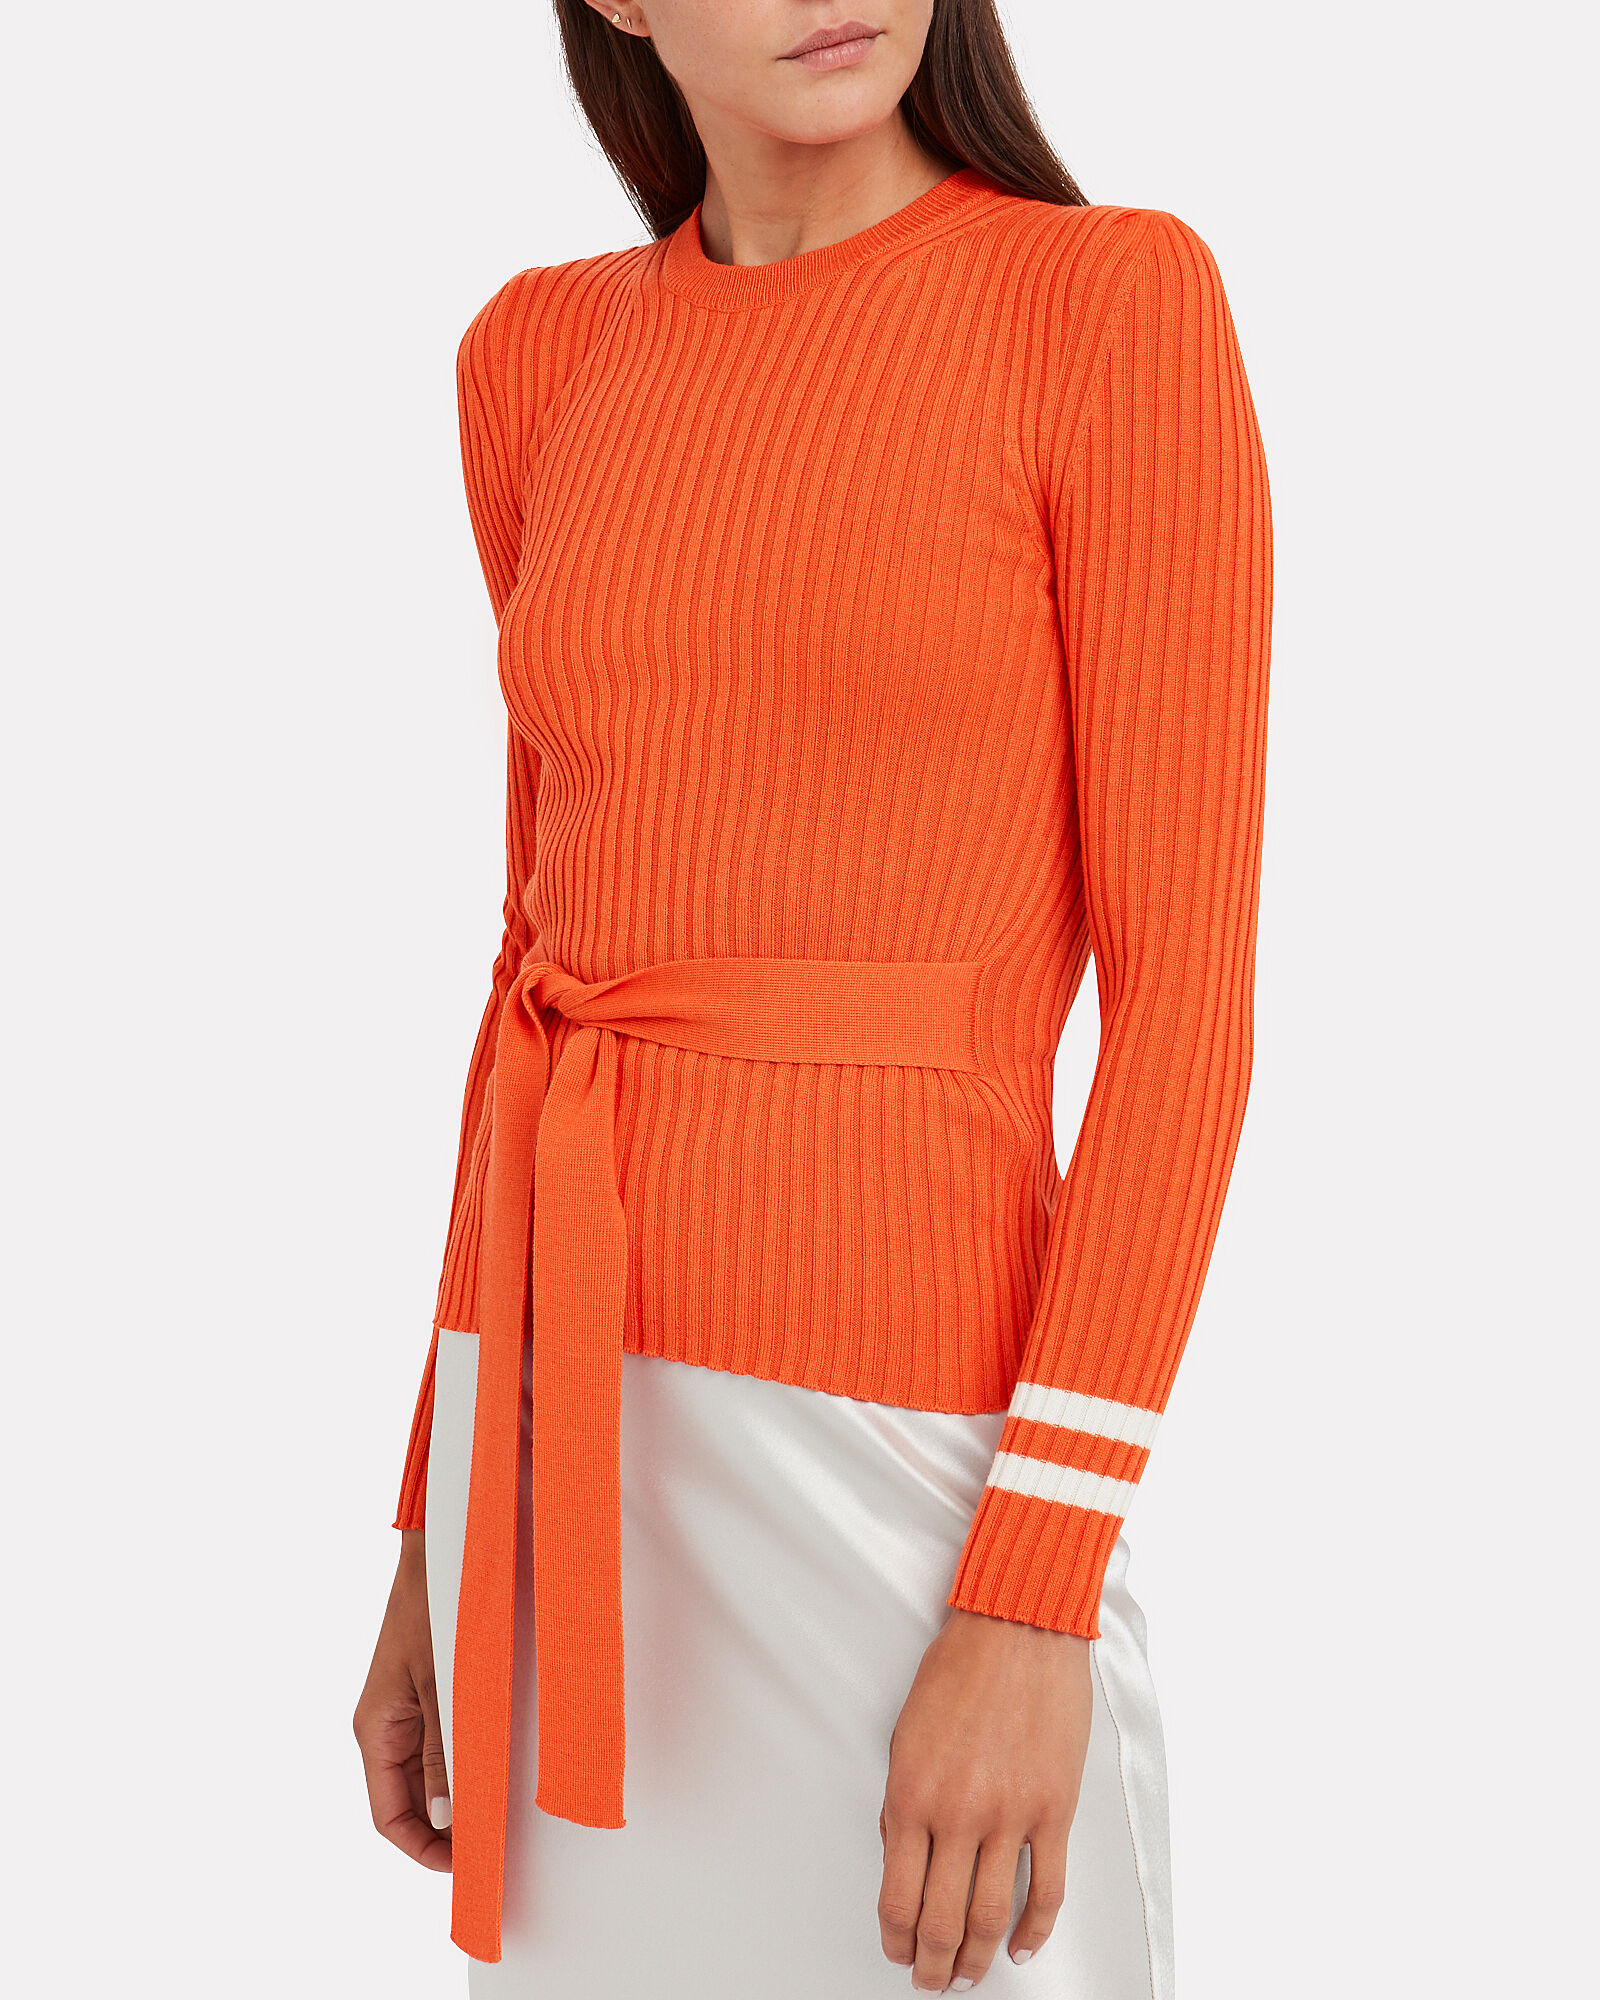 Nearly There Belted Wool Sweater, ORANGE, hi-res